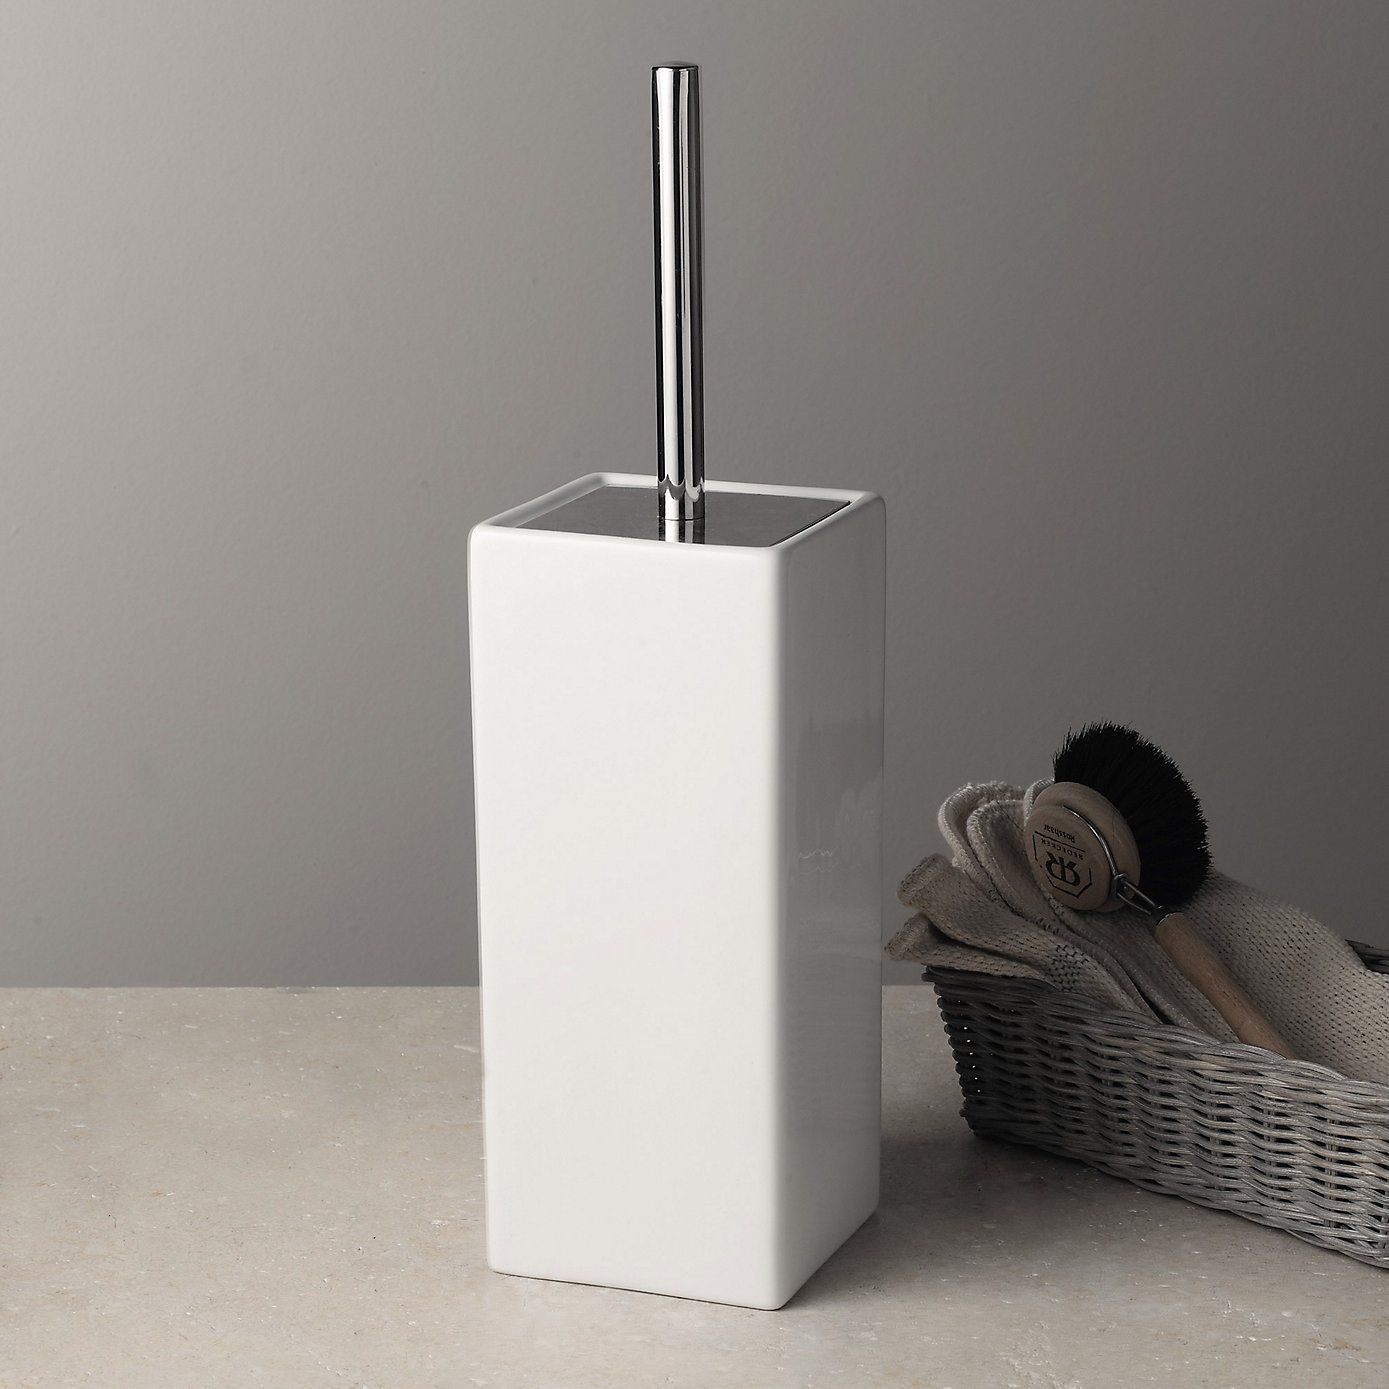 Newcombe Toilet Brush Holder The Whitepany Bathroom